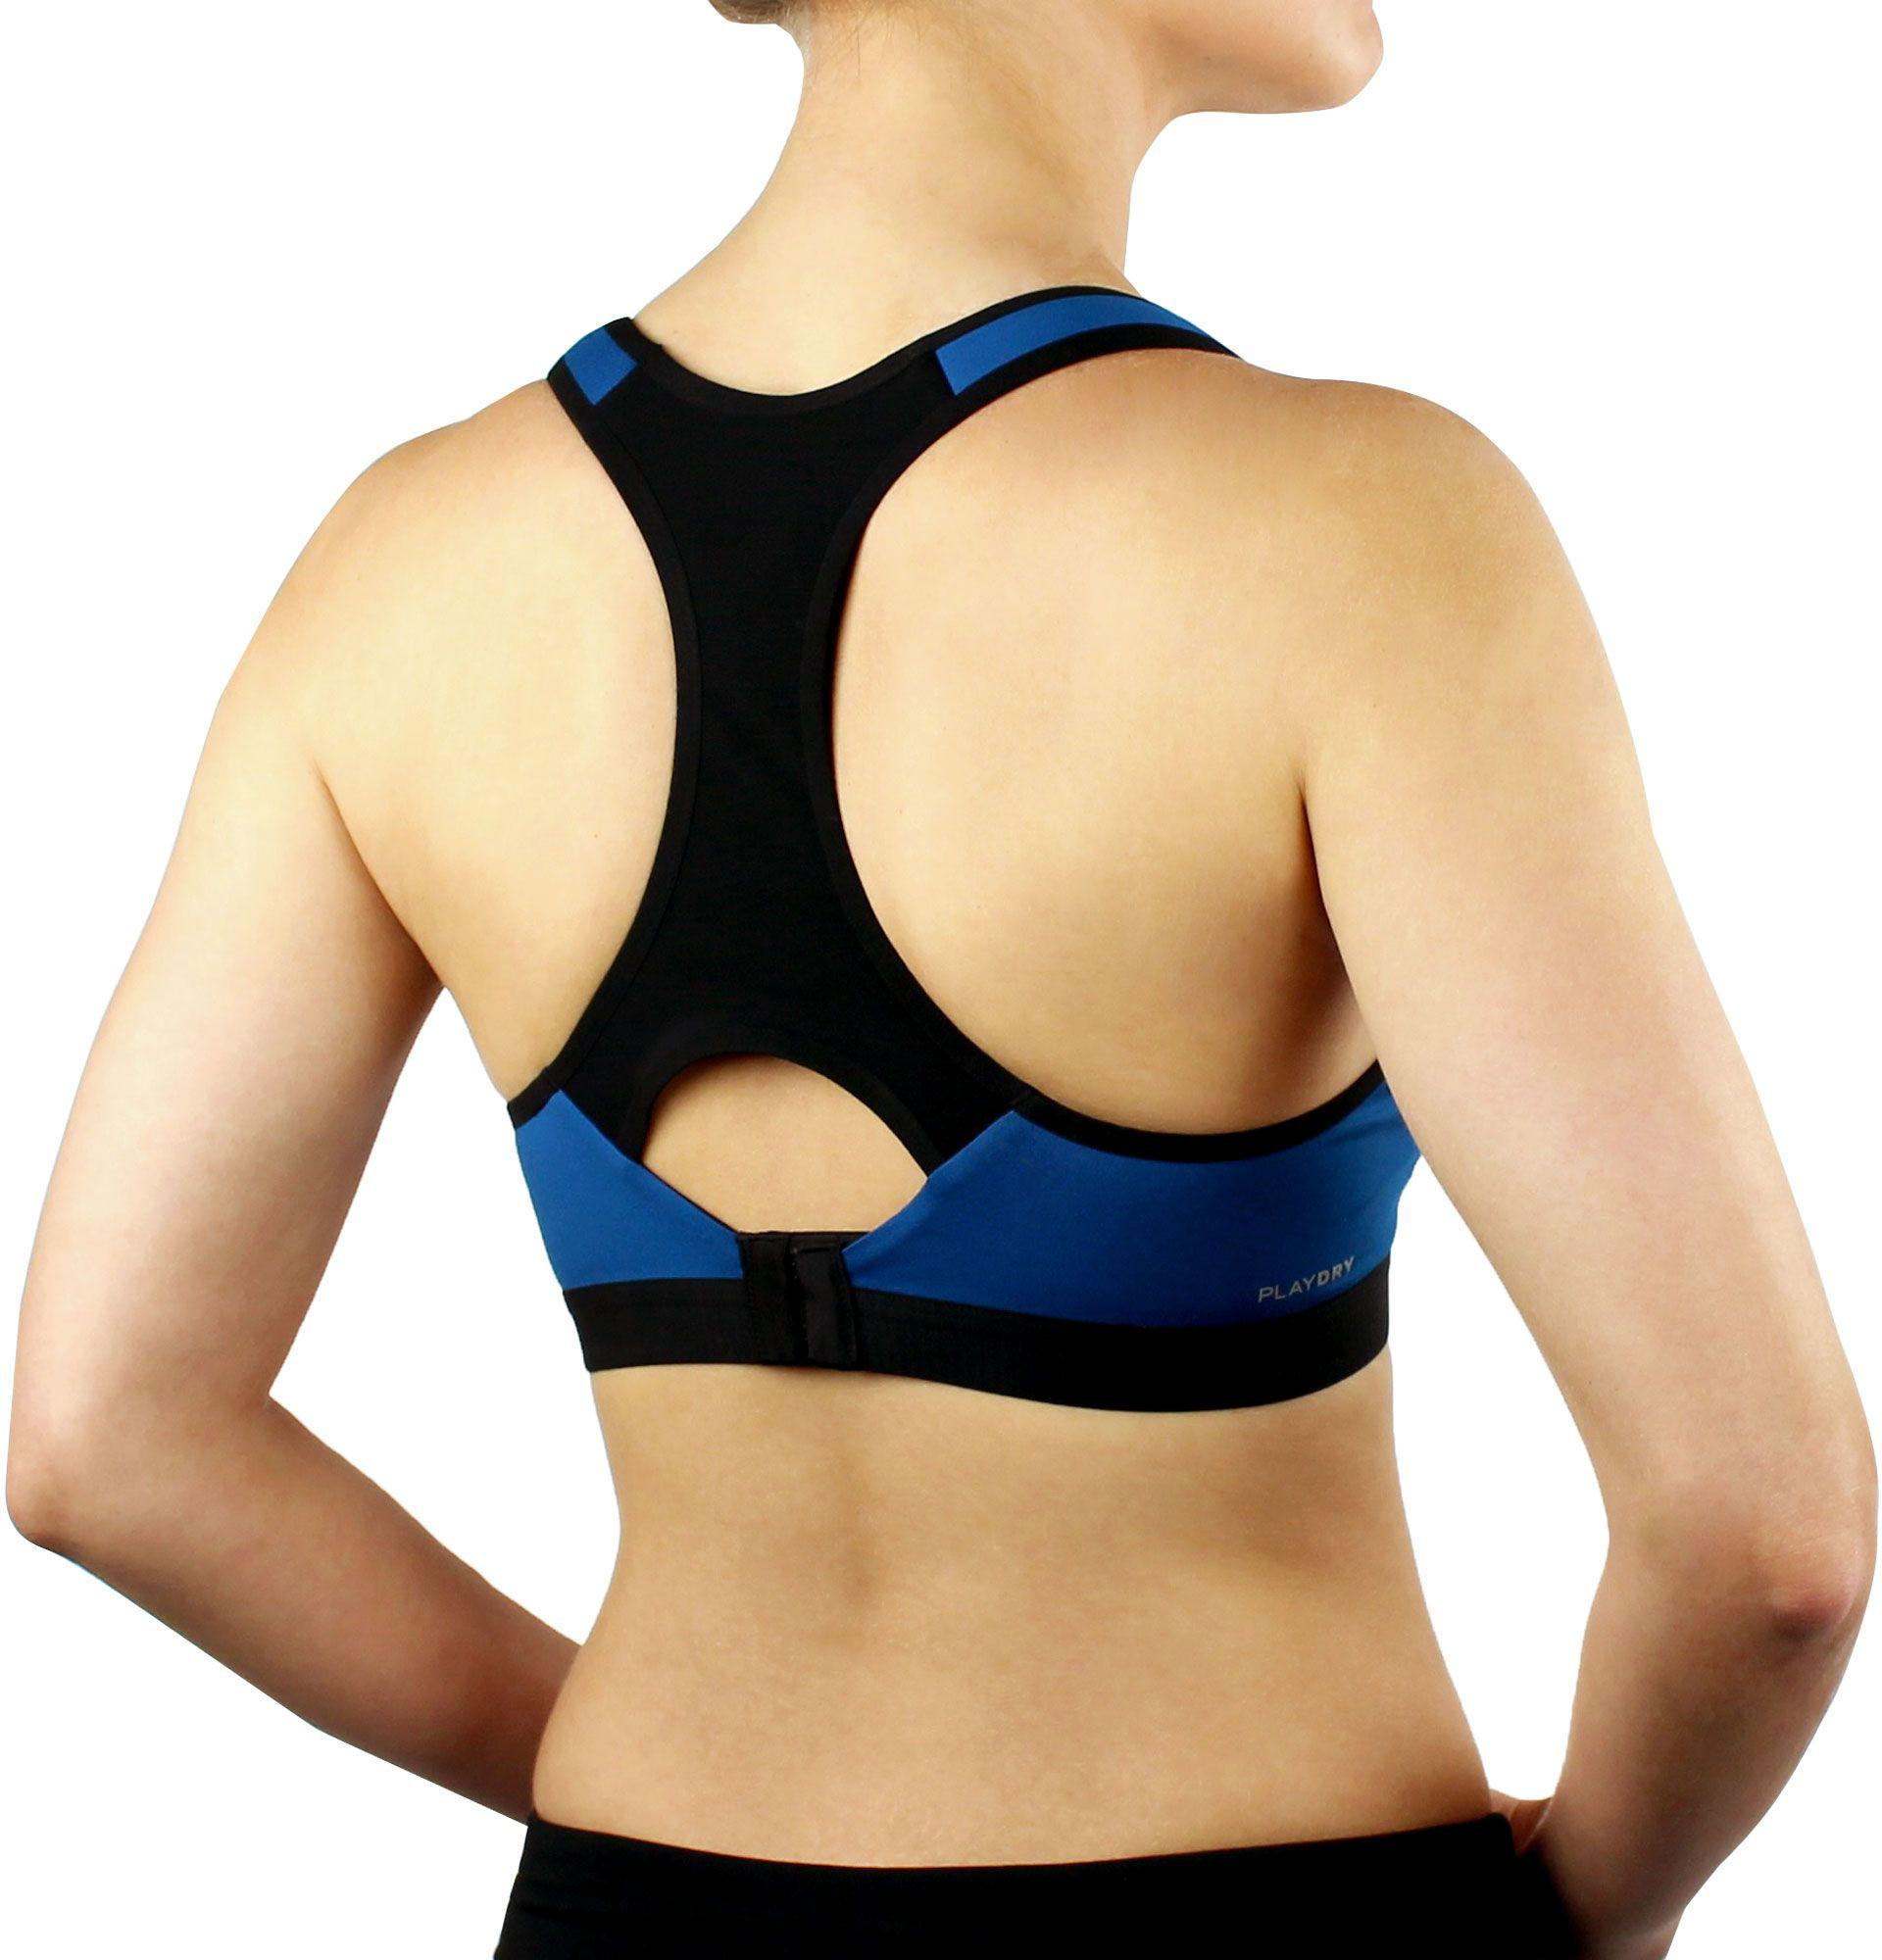 695d54f2d2 Reebok Blue High-impact Molded Cup Sports Bra